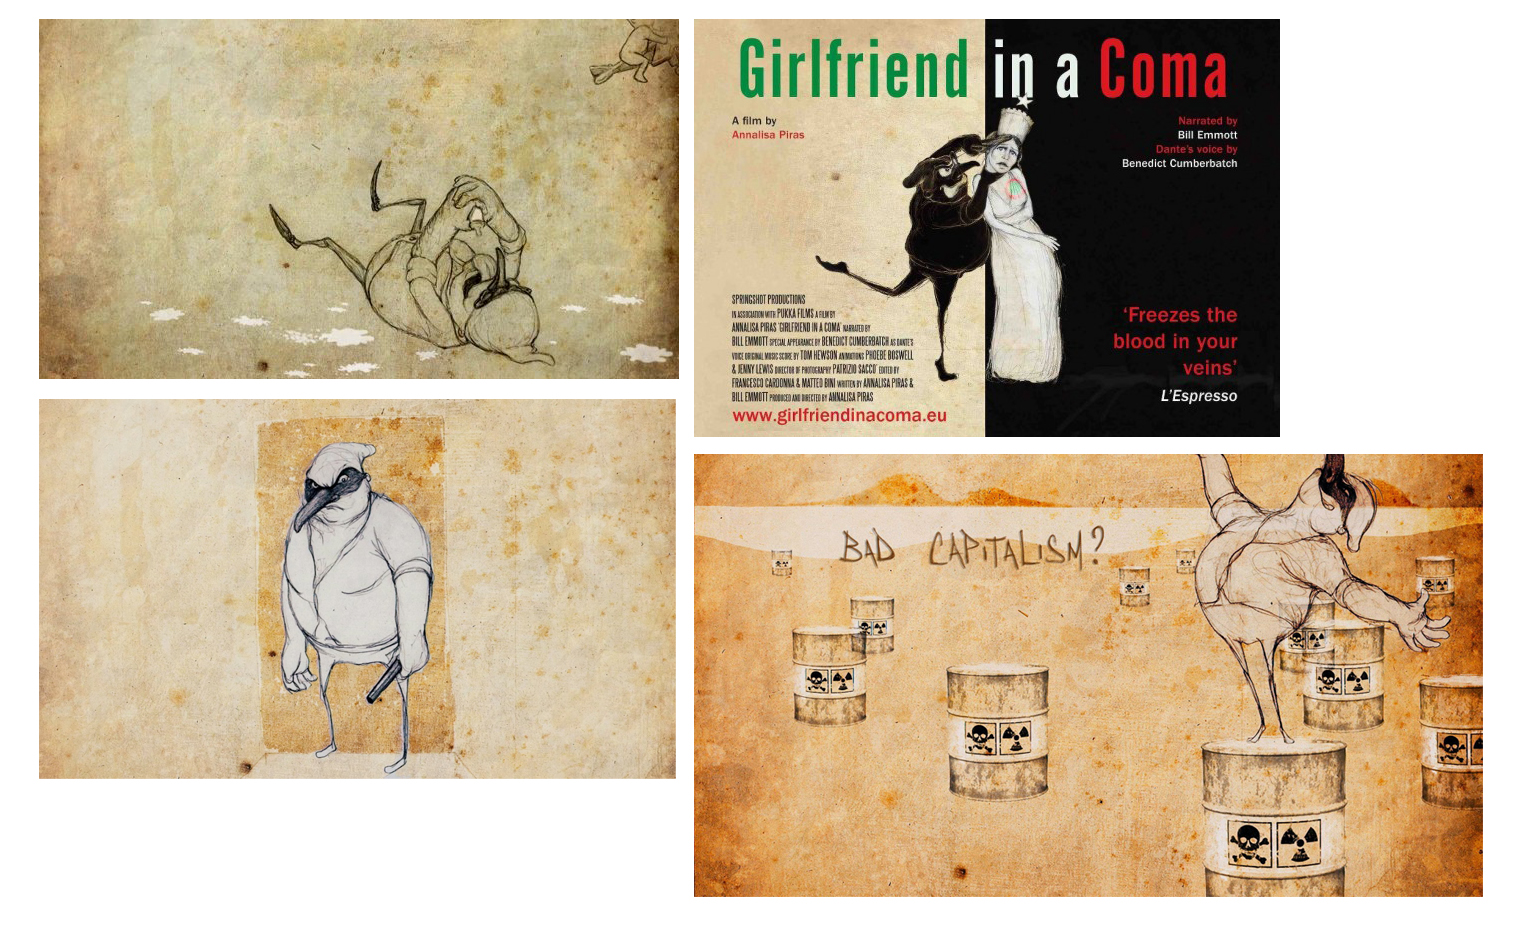 Girlfriend In A Coma    R&D, Character Design, Animation DIrection    Directed by Annalisa Piras. Presented by Bill Emmott. Produced by Springshot Productions. Screened at ICA.   2012